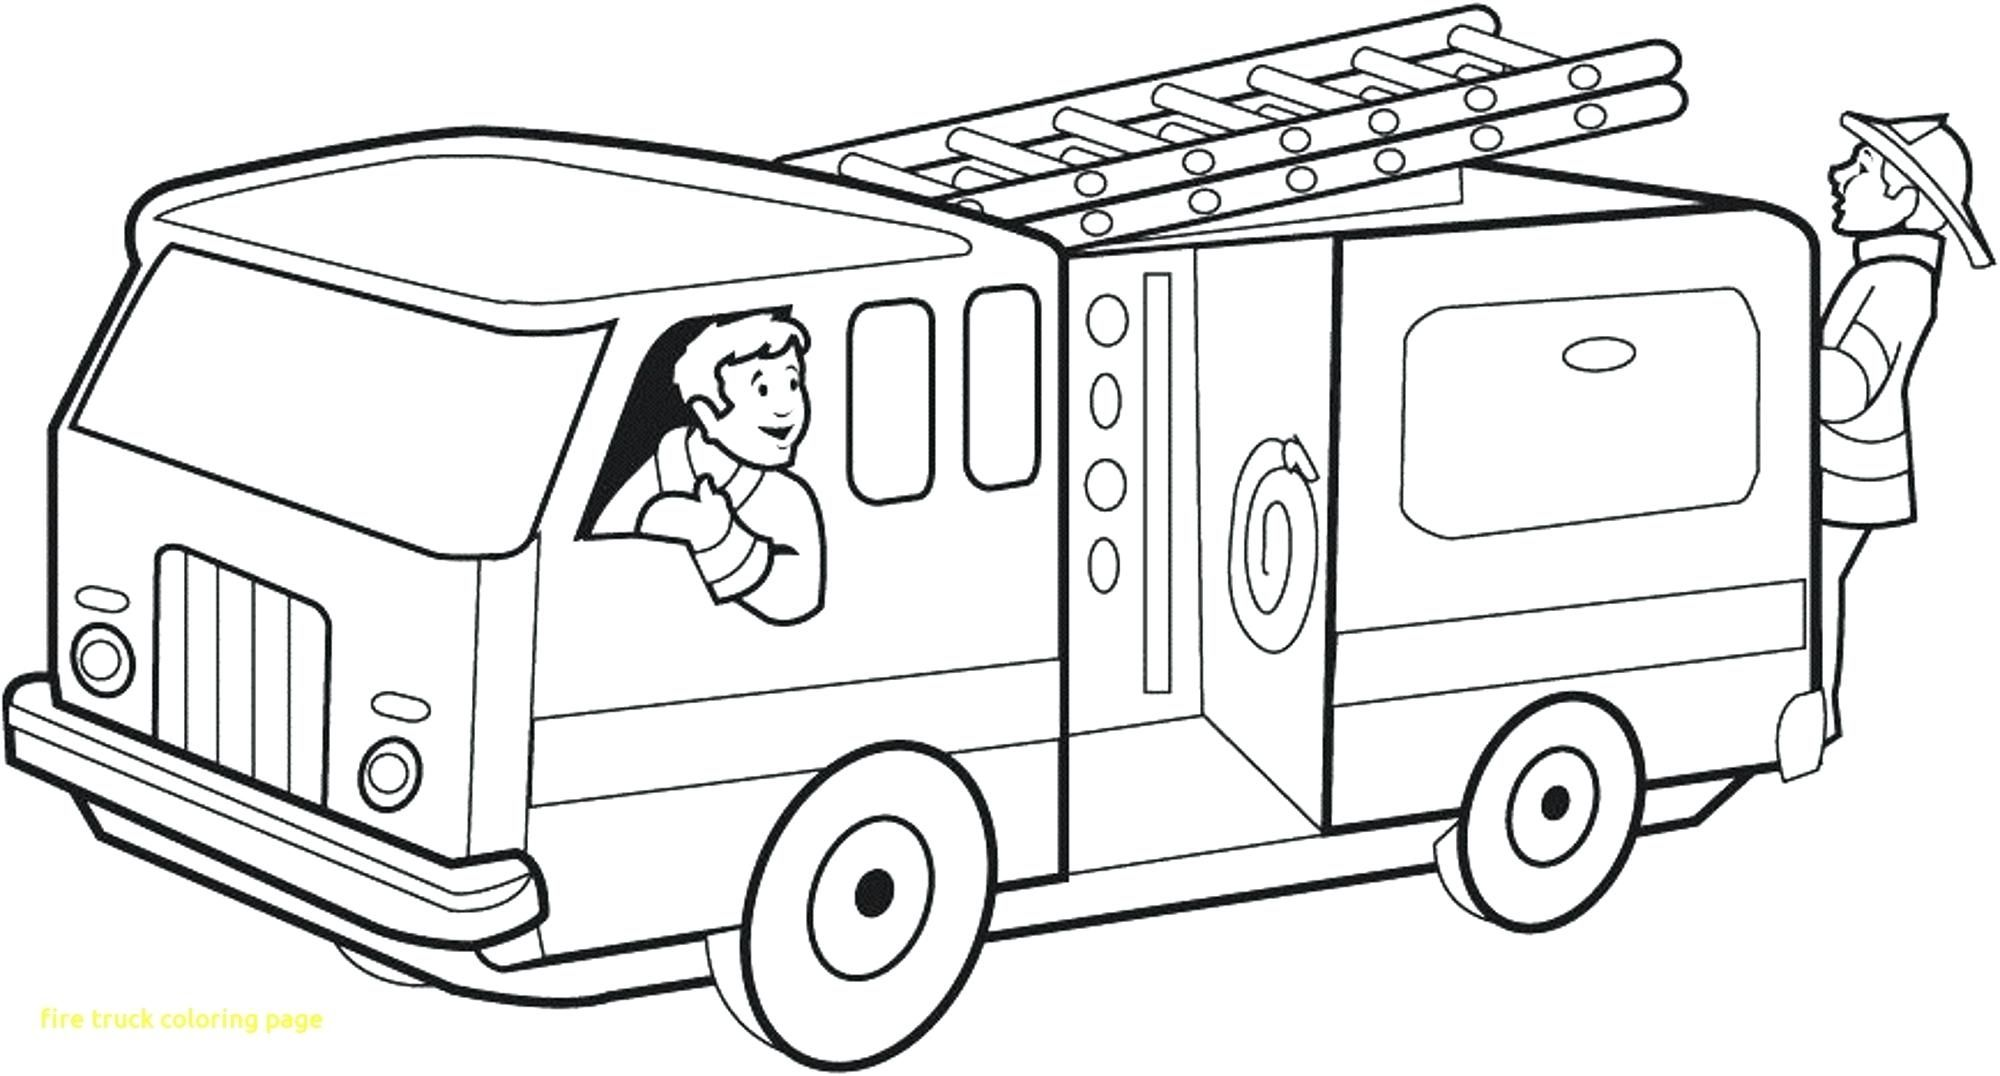 Coloring Pages Of Cars And Trucks Frais Fire Truck Coloring Page